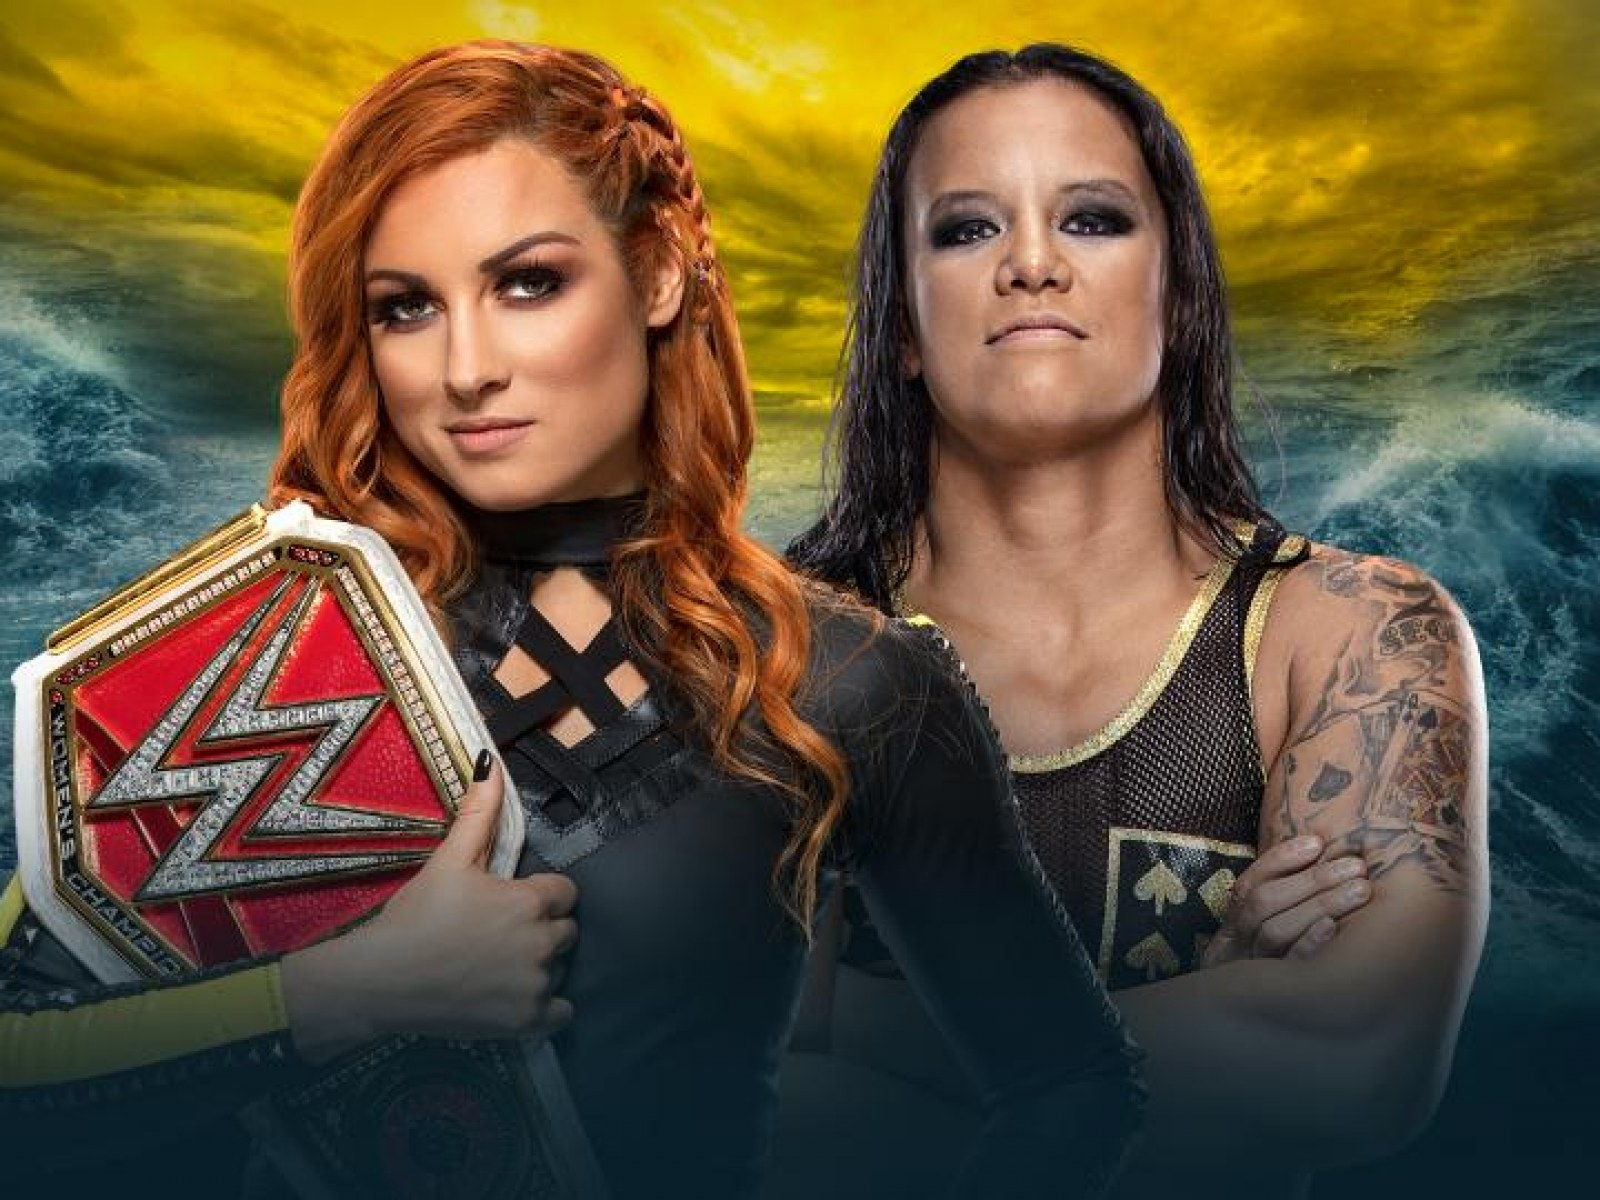 Who is favorites to win in WrestleMania 36